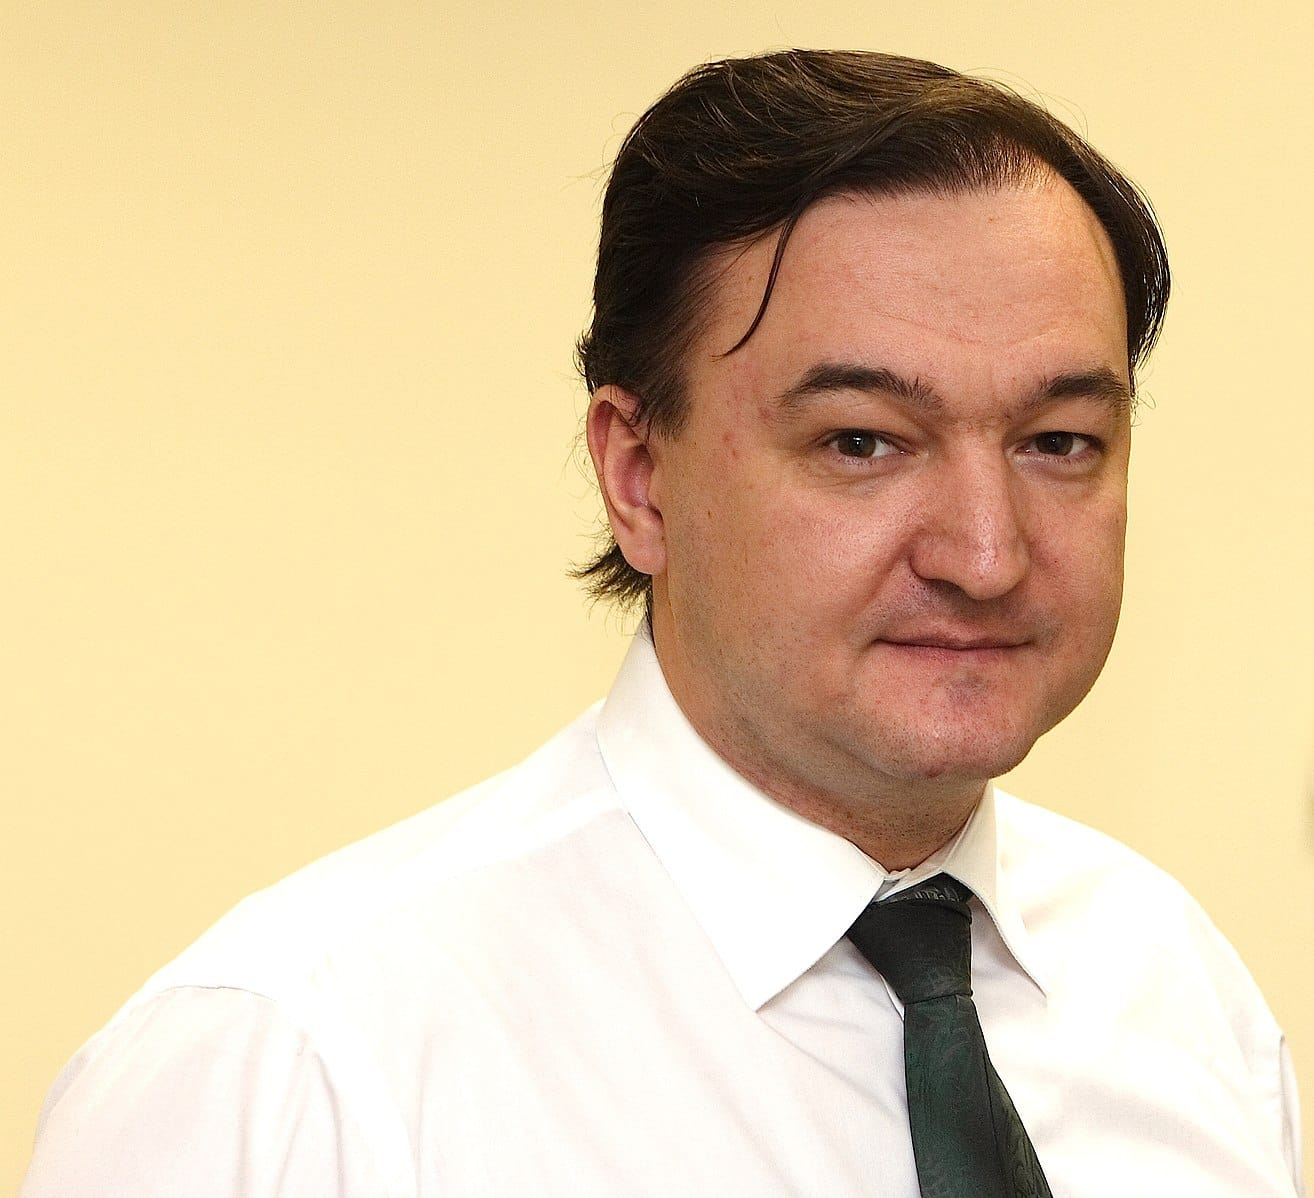 The death of Sergey Magnitsky